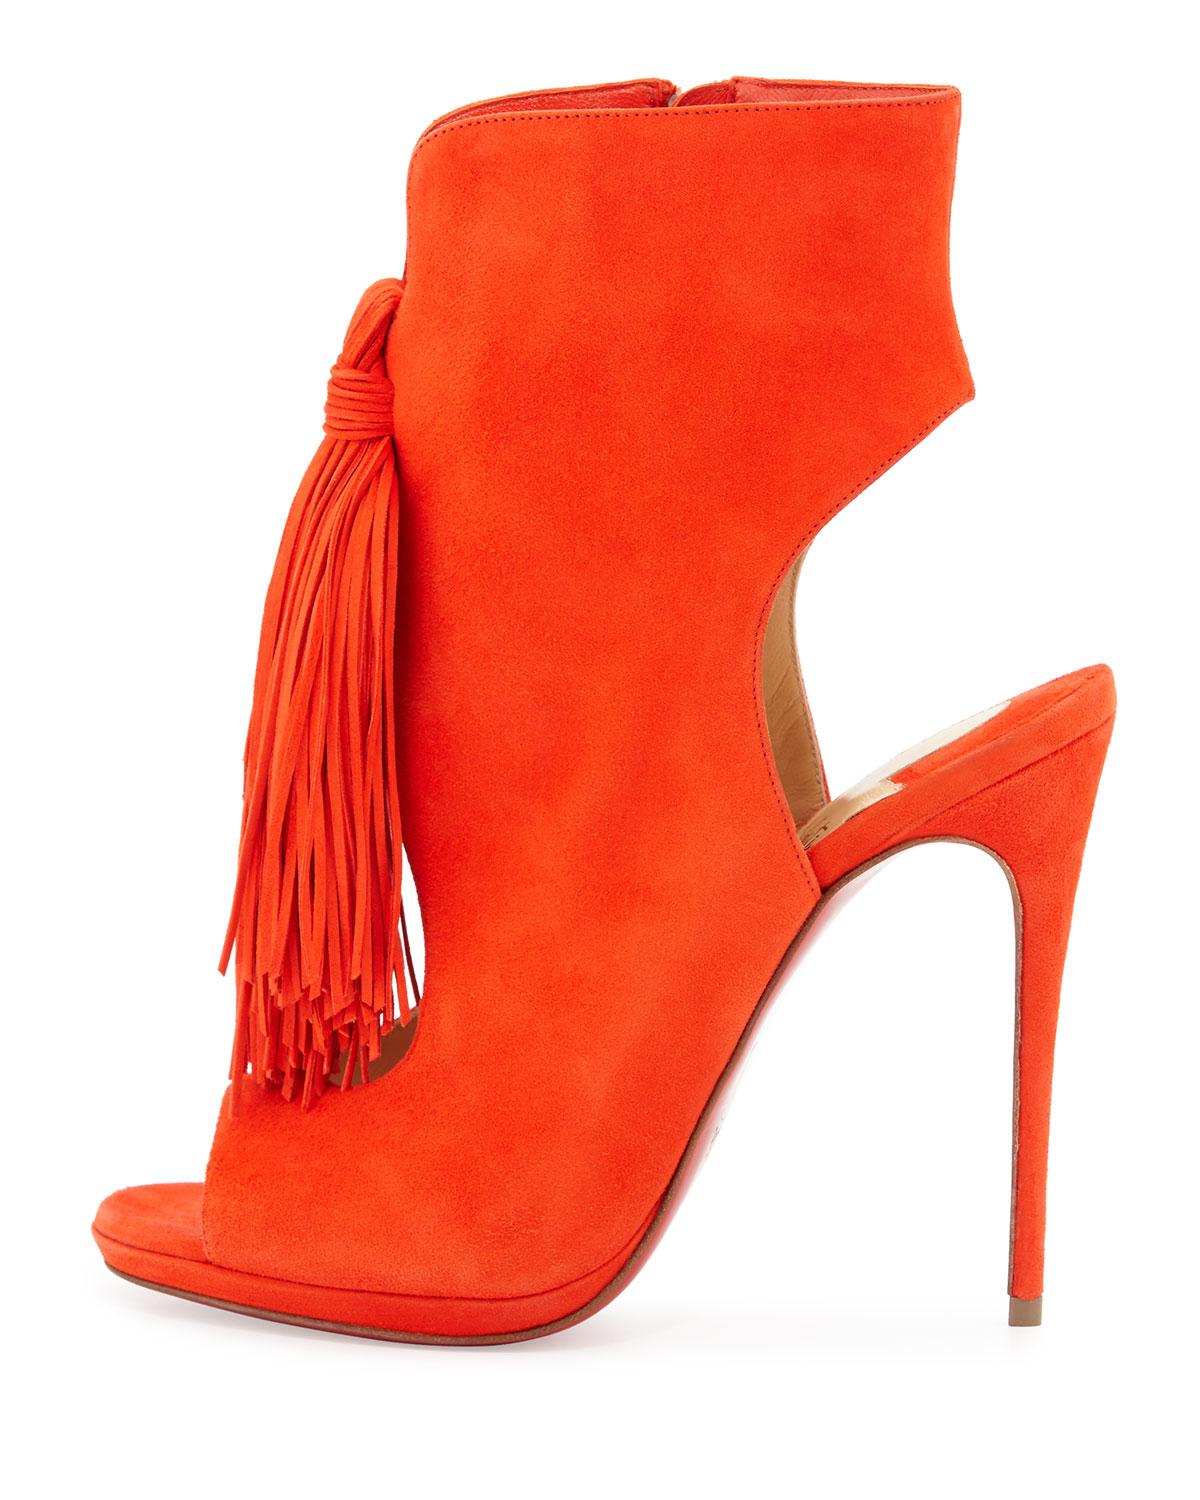 cost of christian louboutin shoes - Christian louboutin Ottaka Suede Fringed Sandals in Orange ...